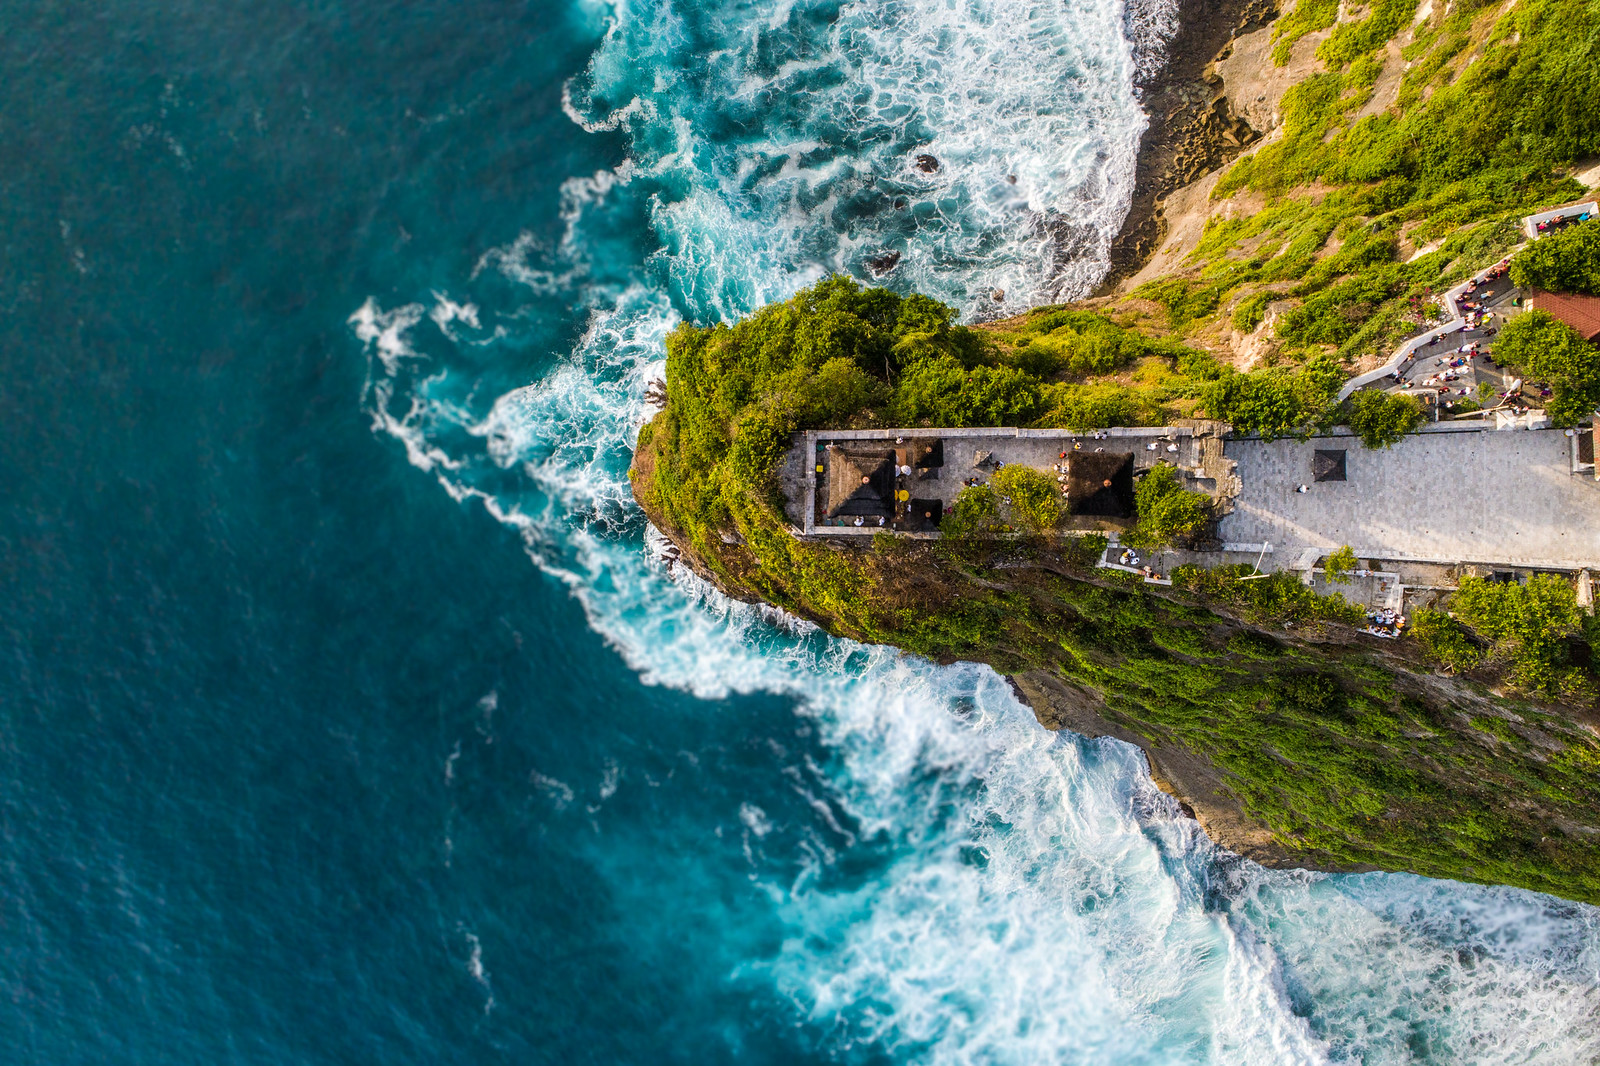 Uluwatu temple by bali drone production